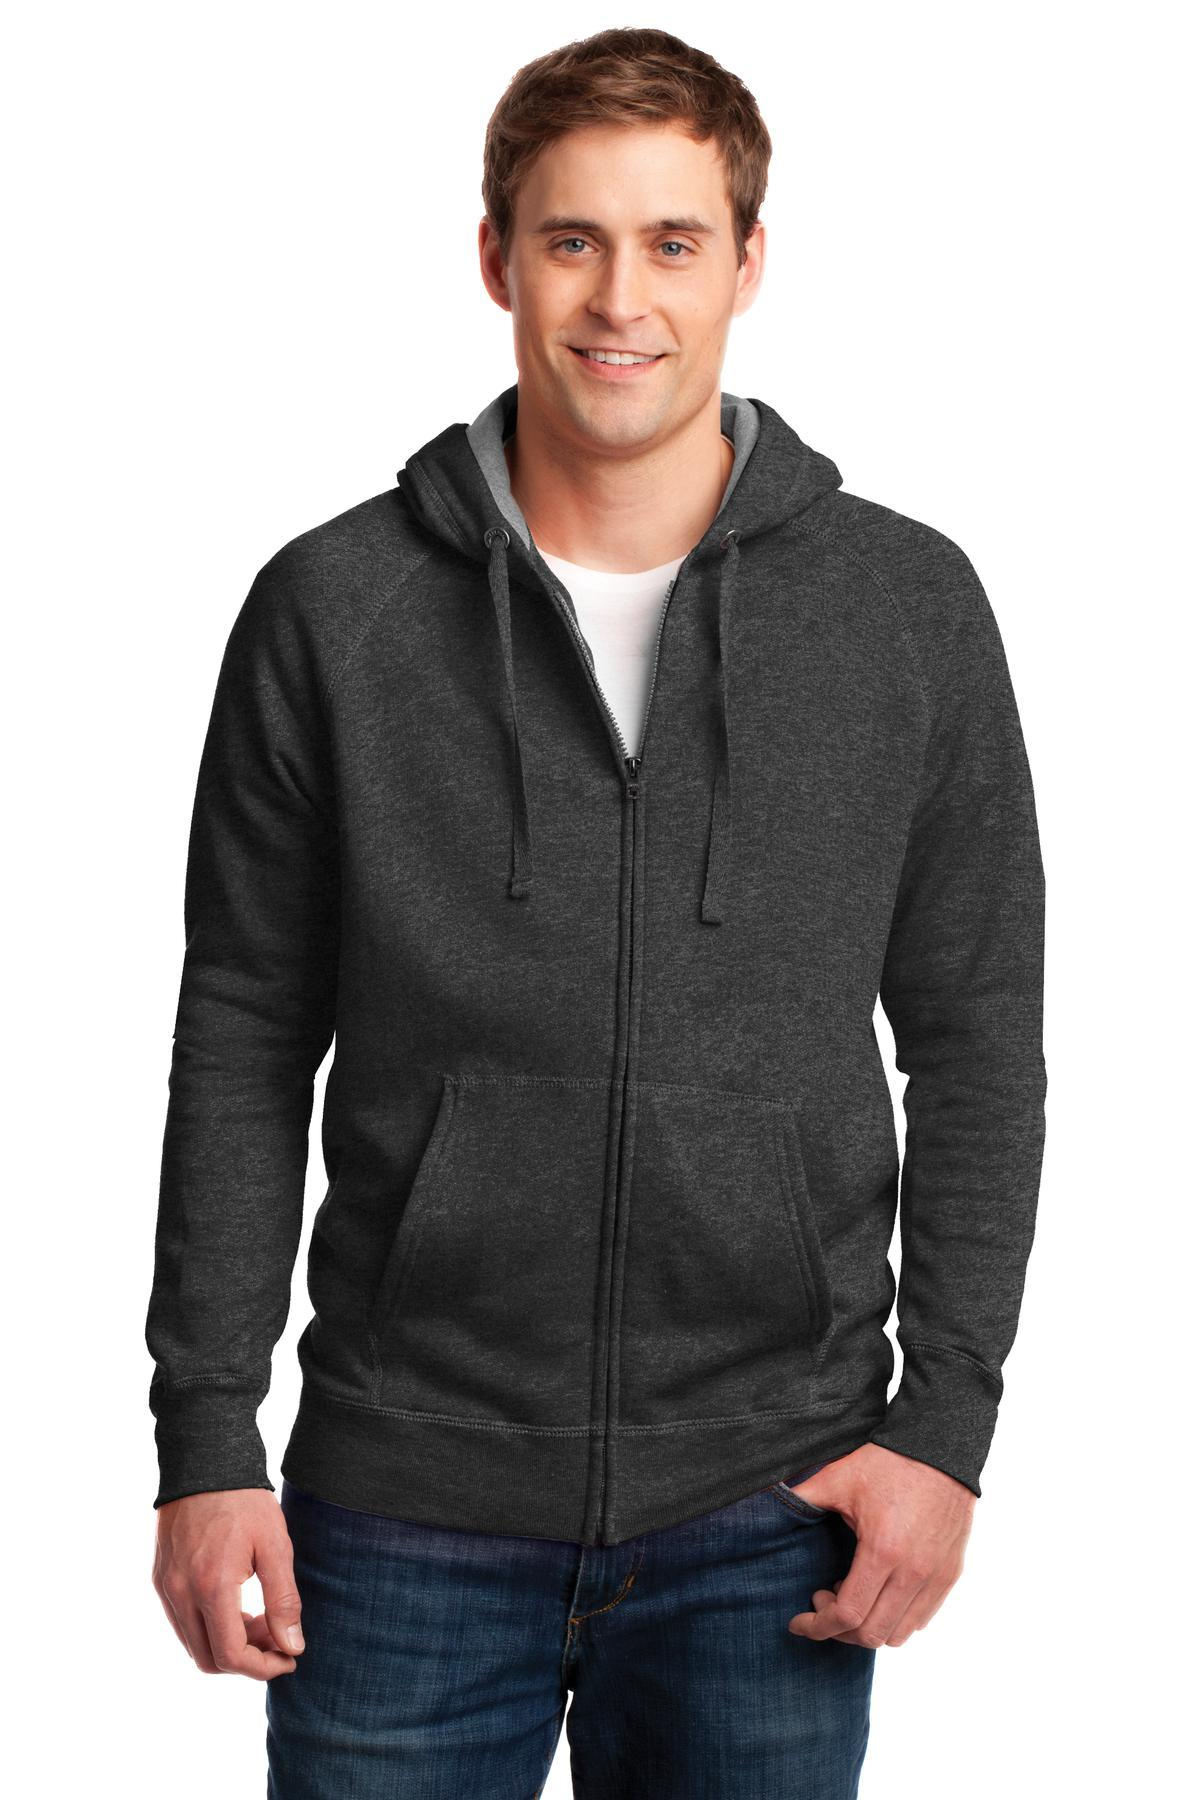 Charcoal Heather - Hanes HN280